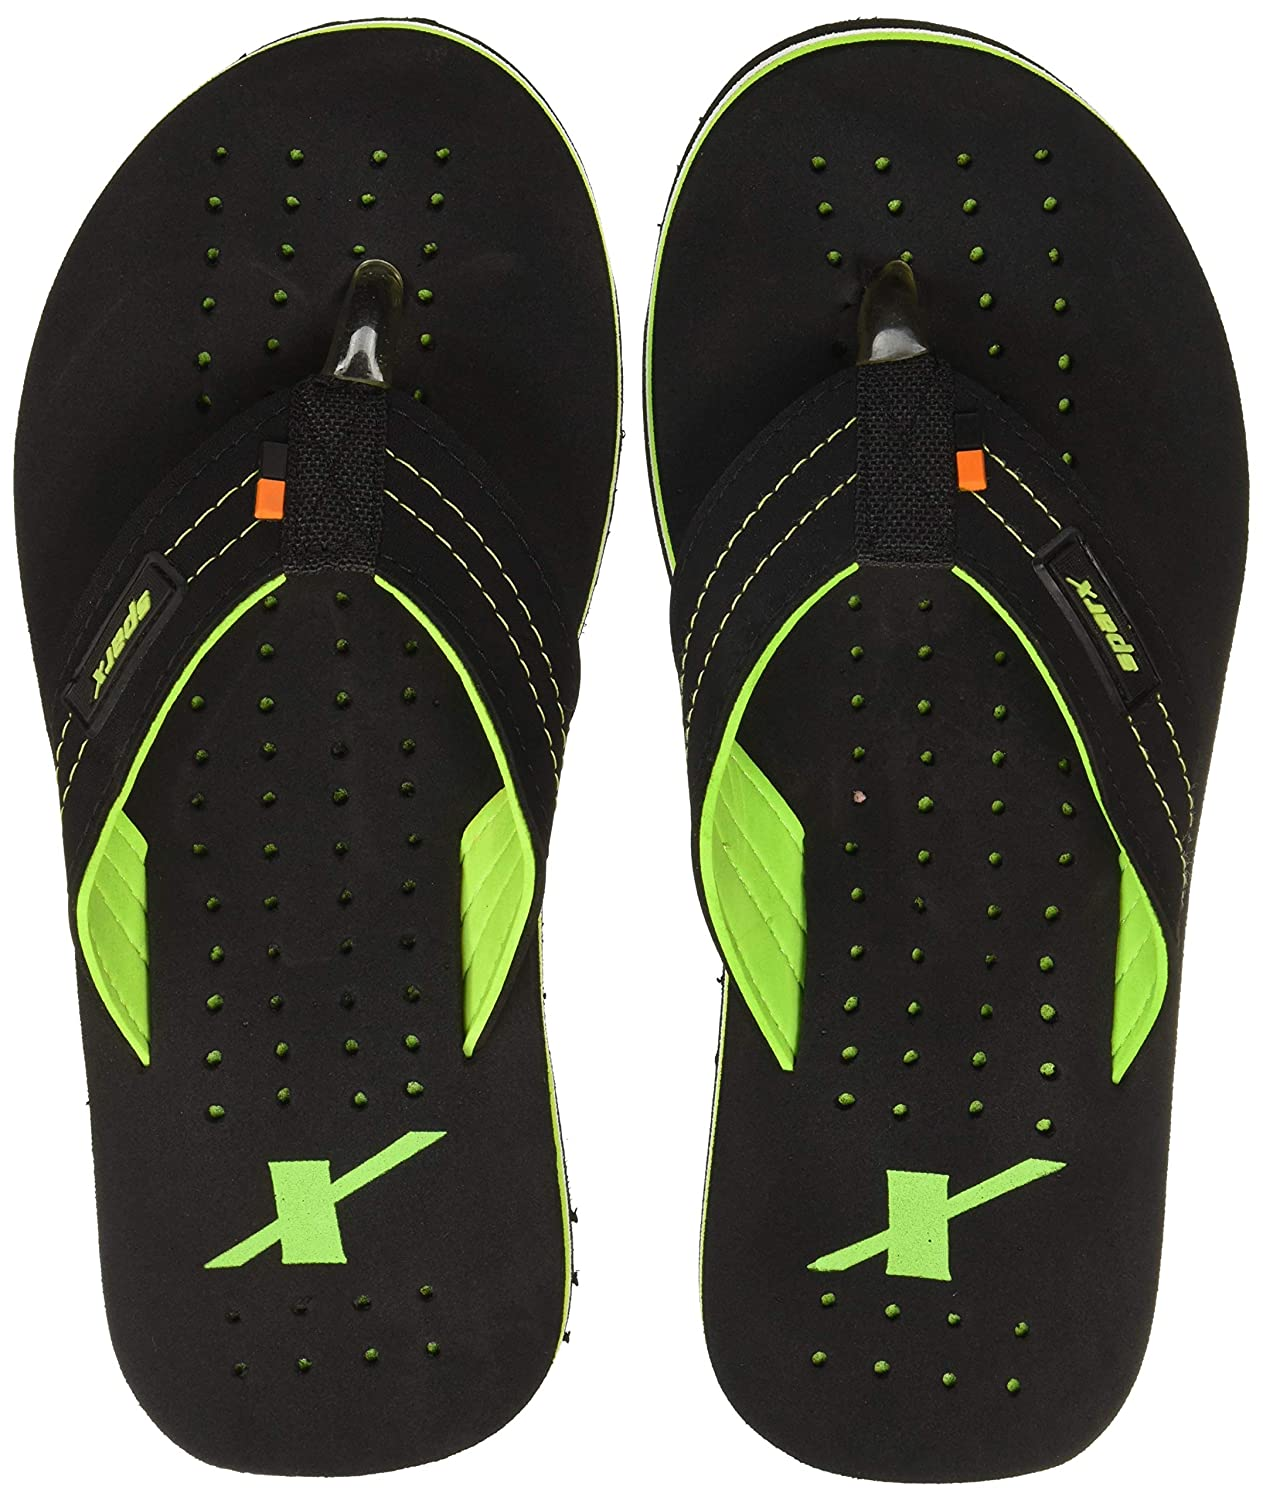 e5f1b2117ea Sparx Men s Flip-Flops and House Slippers  Buy Online at Low Prices in  India - Amazon.in